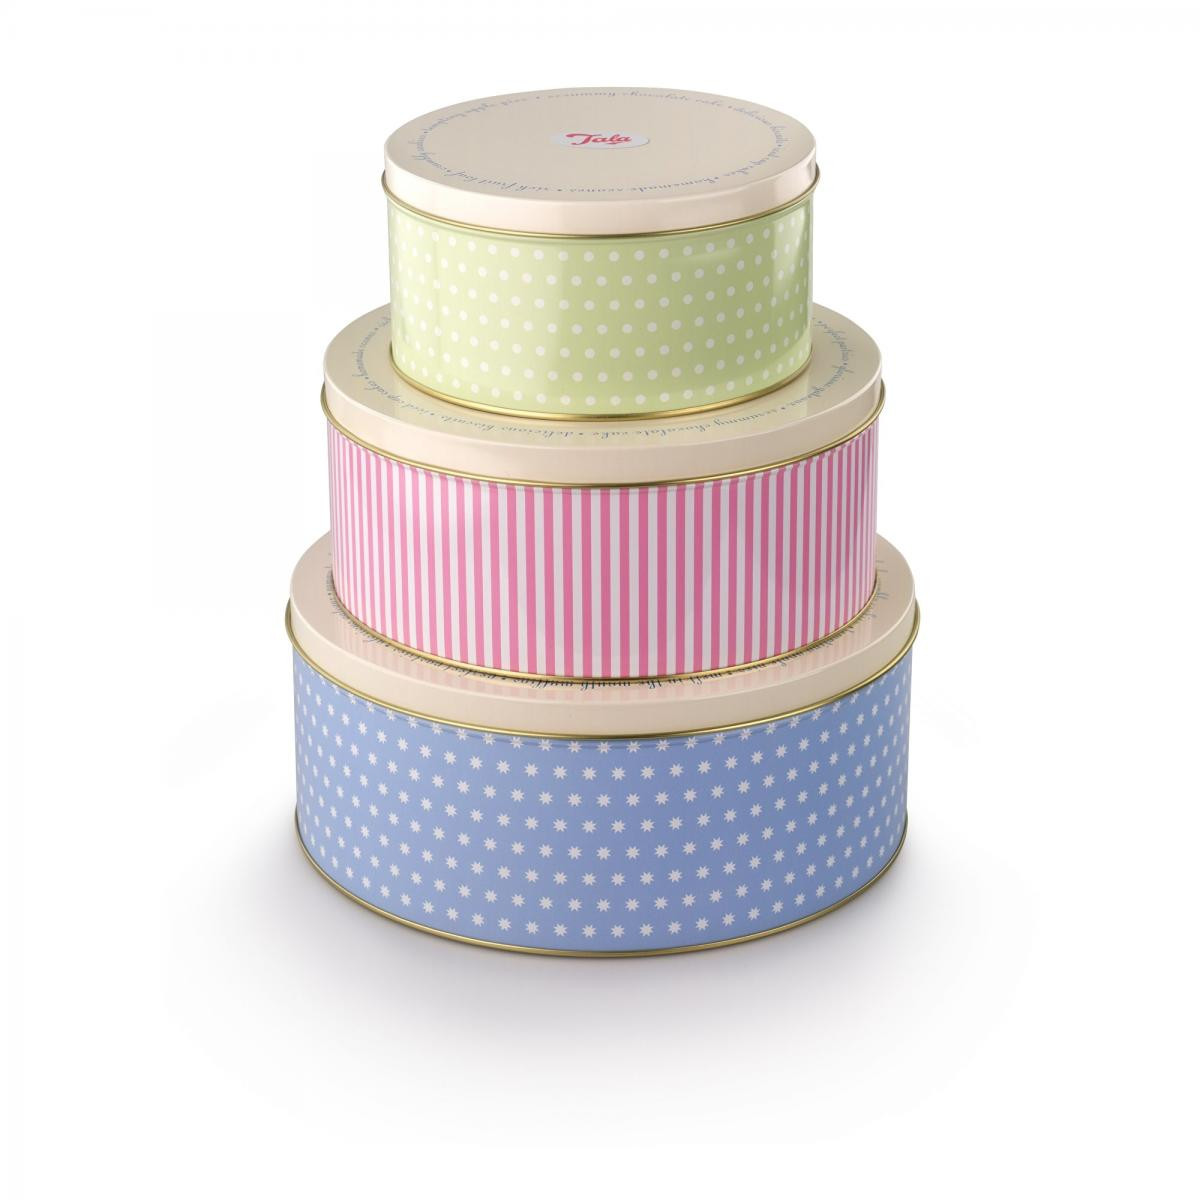 Set of 3 Simple Pattern Cake Tins – Now Only £15.00